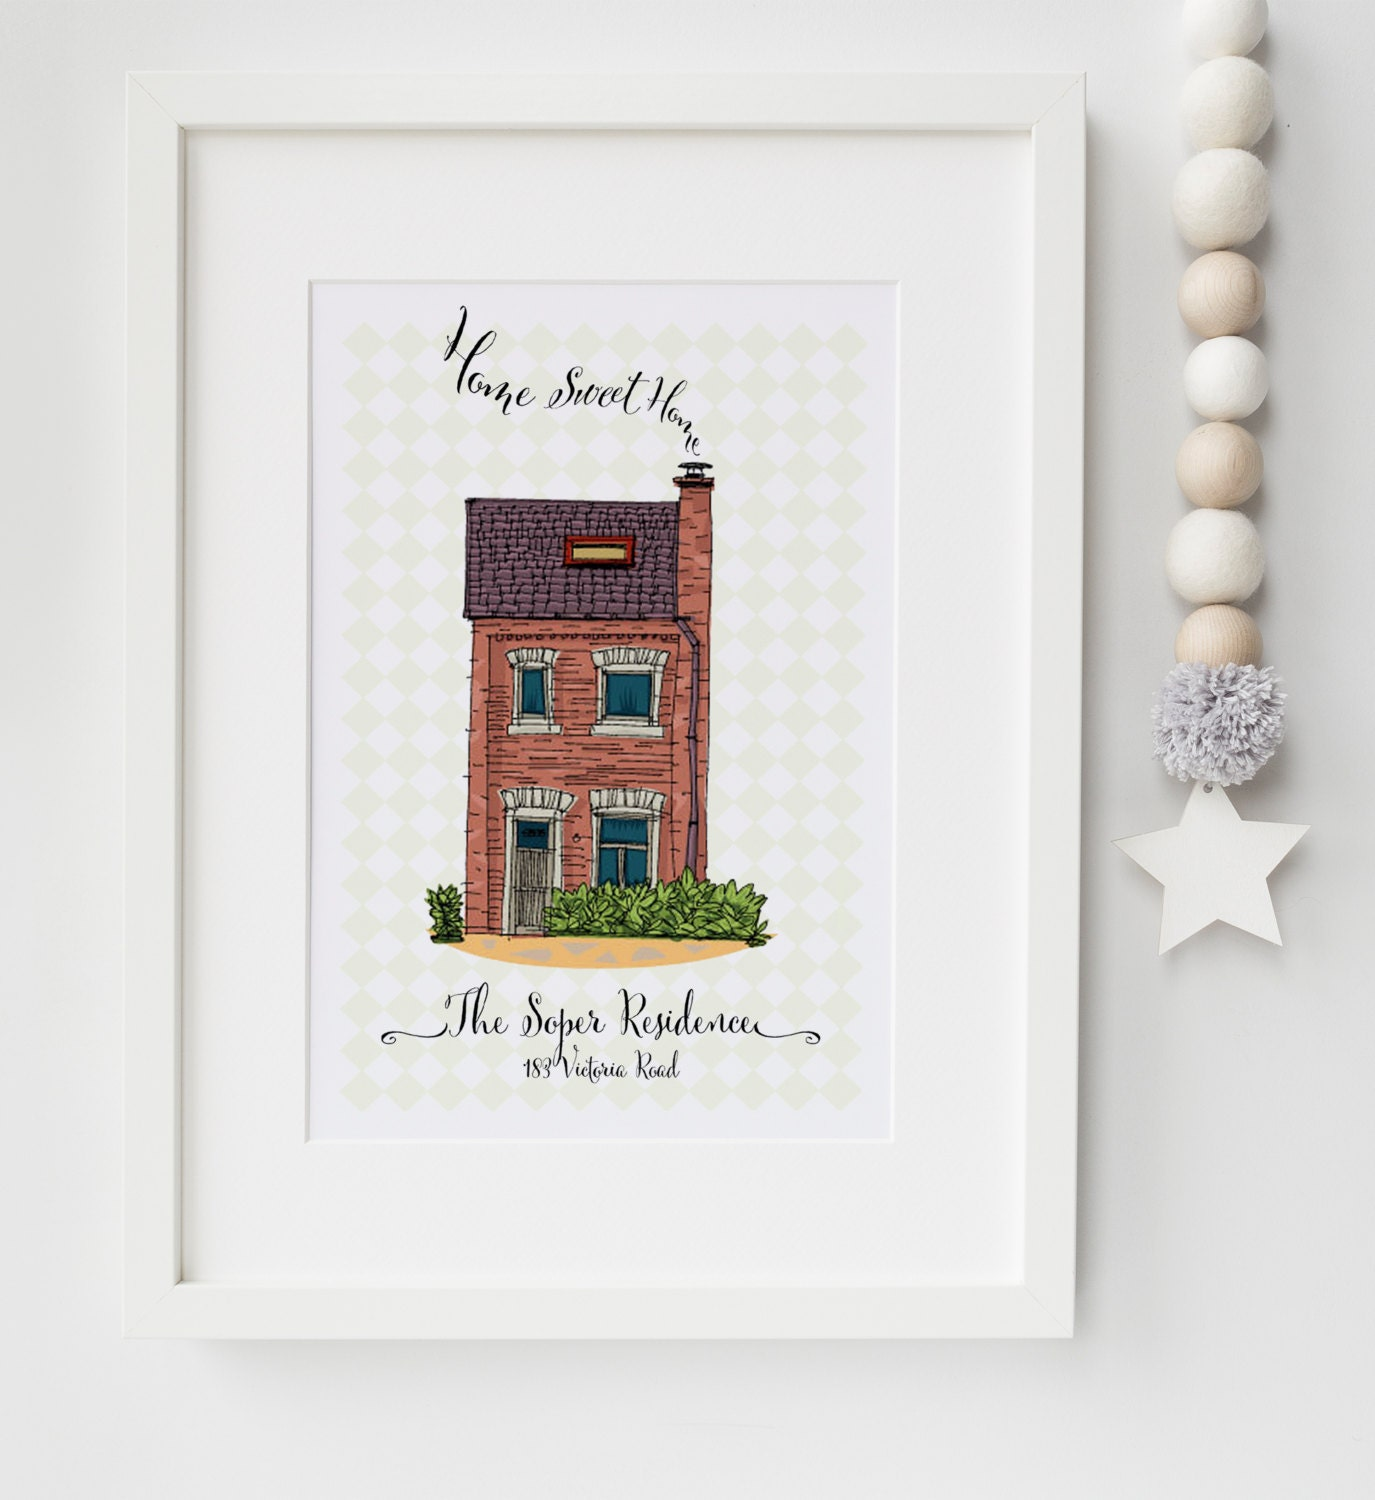 Personalised New Home/House Warming Picture Print Moving In Gift ...